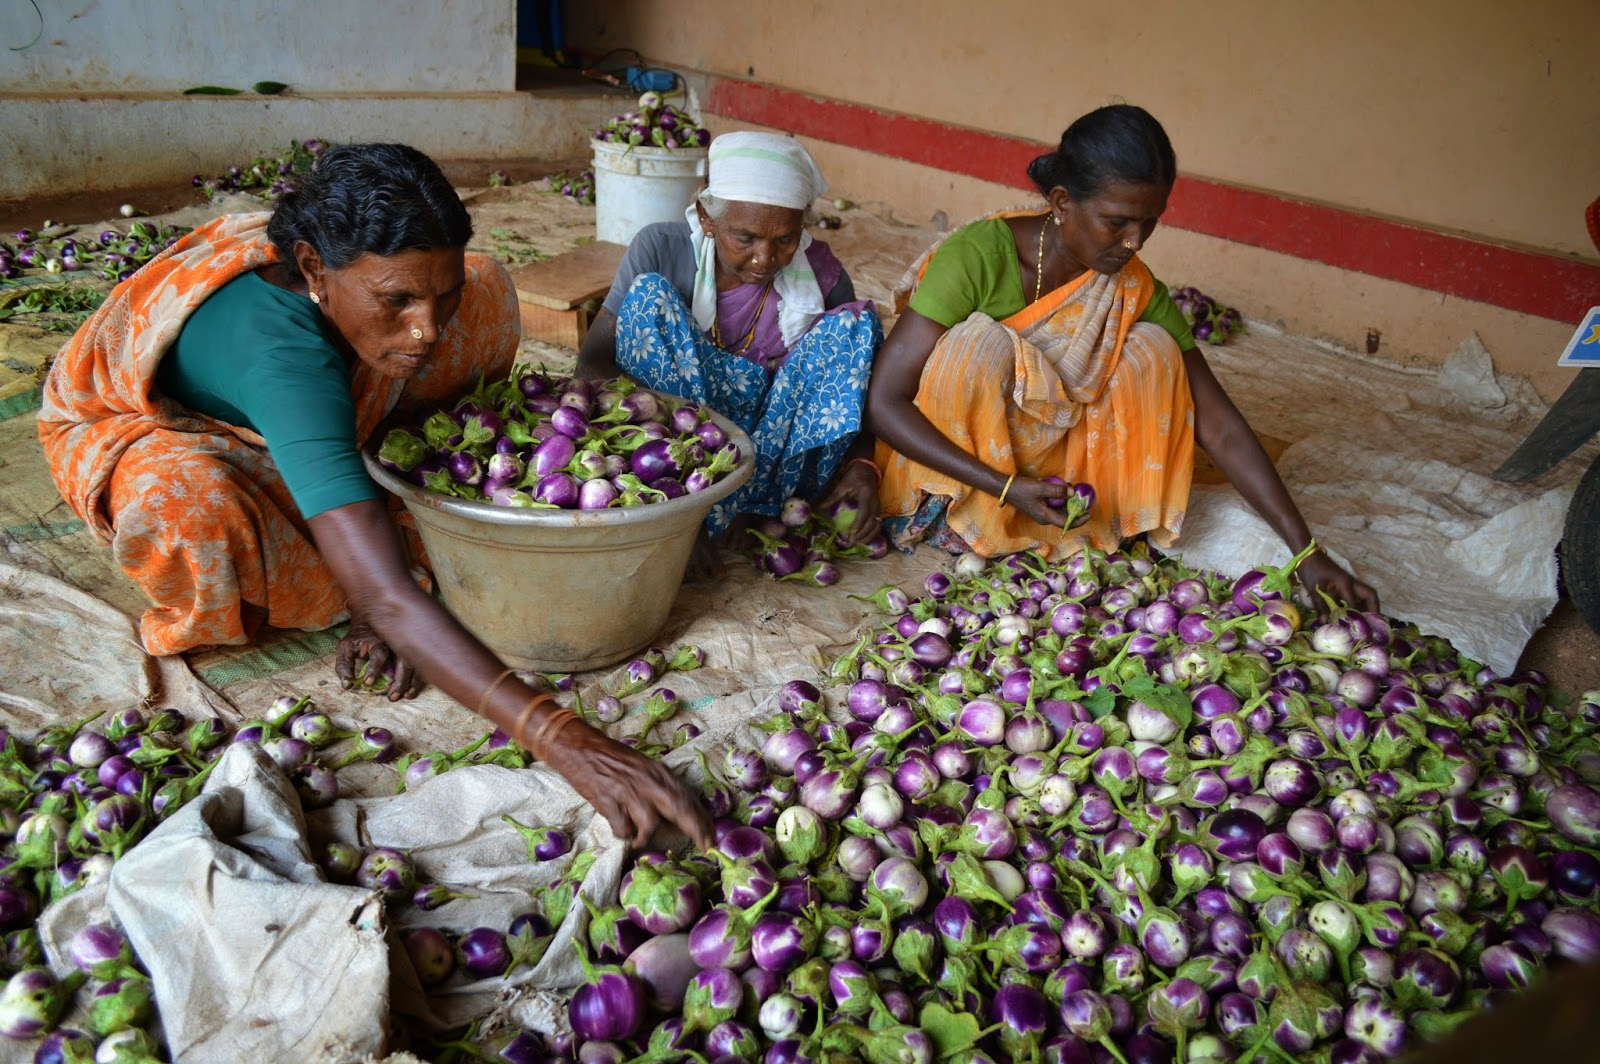 Vegetable cultivation is the main feature of the Thottiyapatty garden land area-OFI/SG- SEVAI Project.